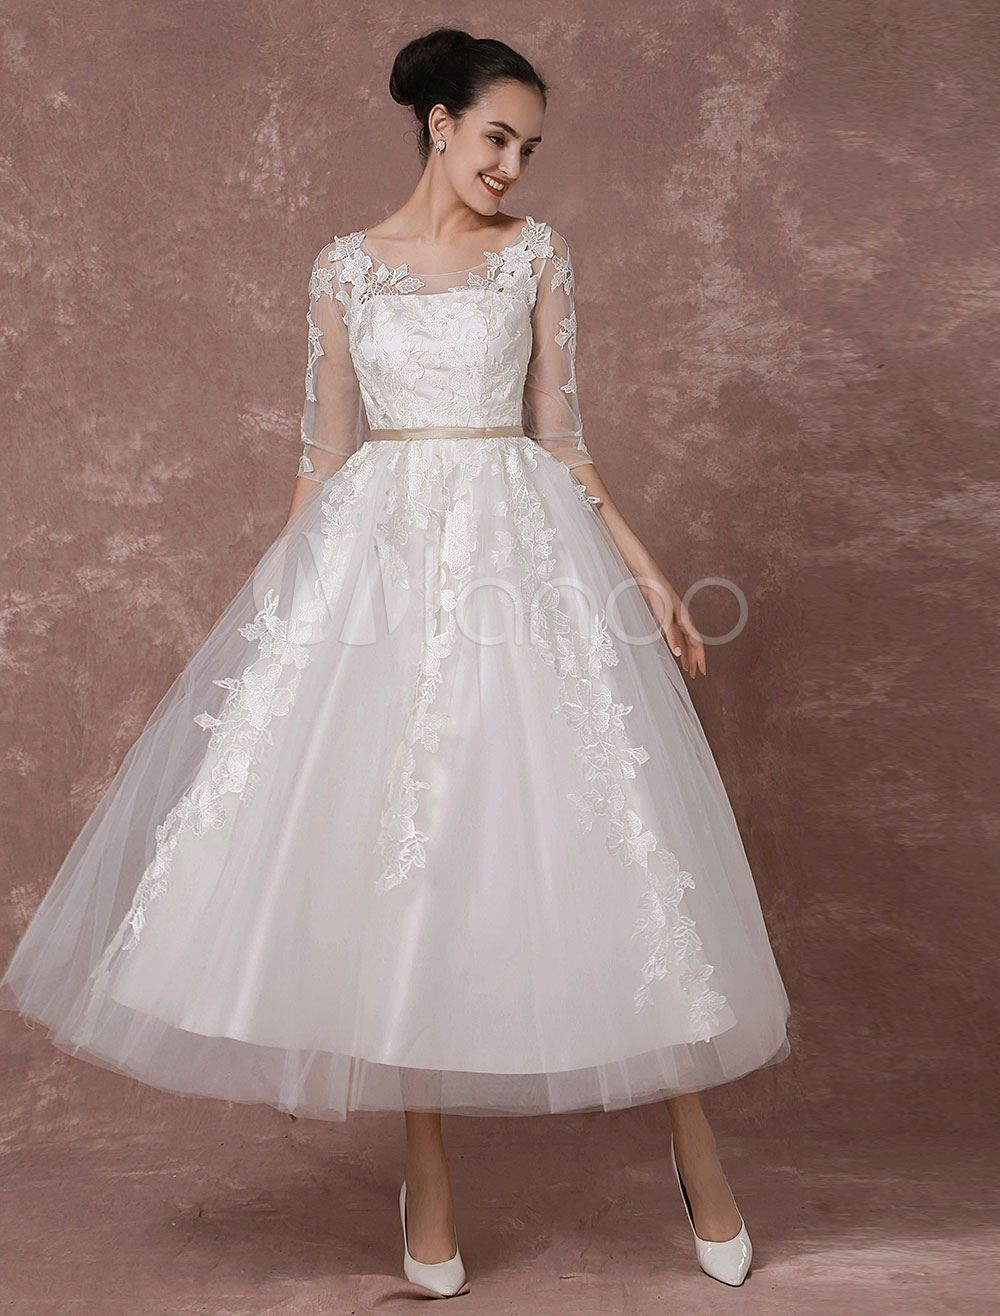 Summer wedding dresses vintage short bridal gown tulle lace